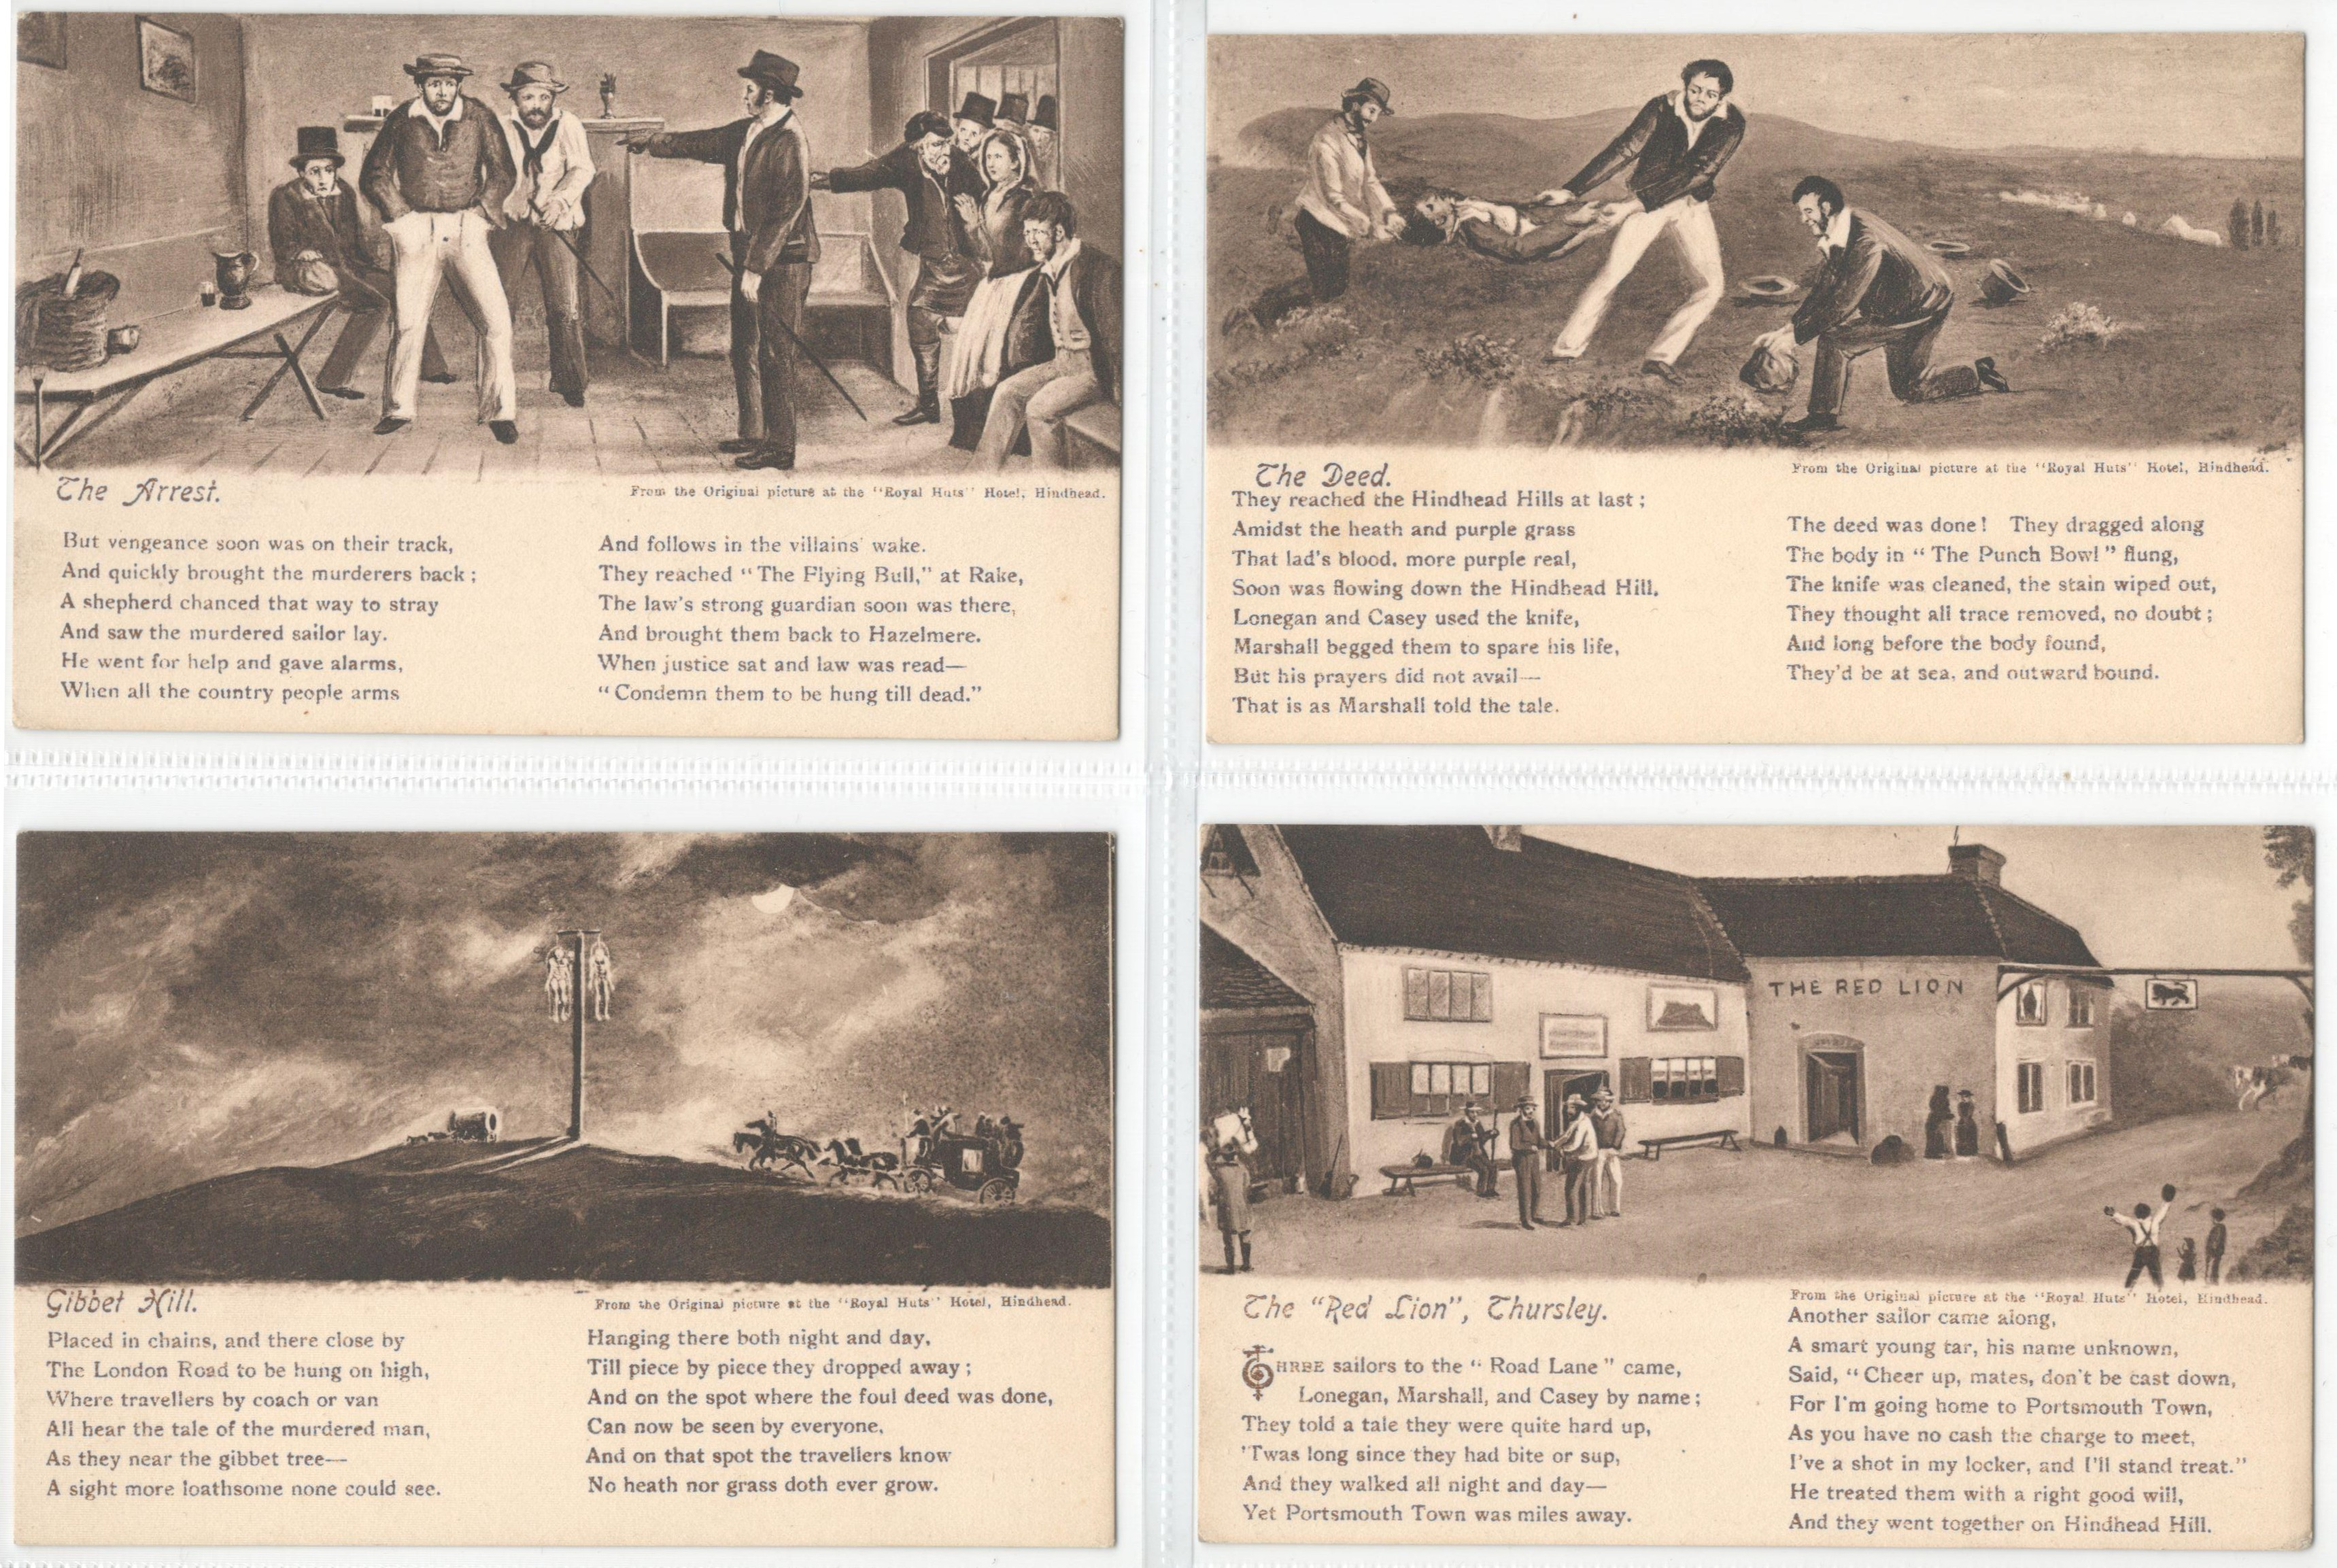 Lot 58 - SET OF FOUR POSTCARDS FROM THE ORIGINAL PICTURES AT THE ROYAL HUTS HOTEL HINDHEAD